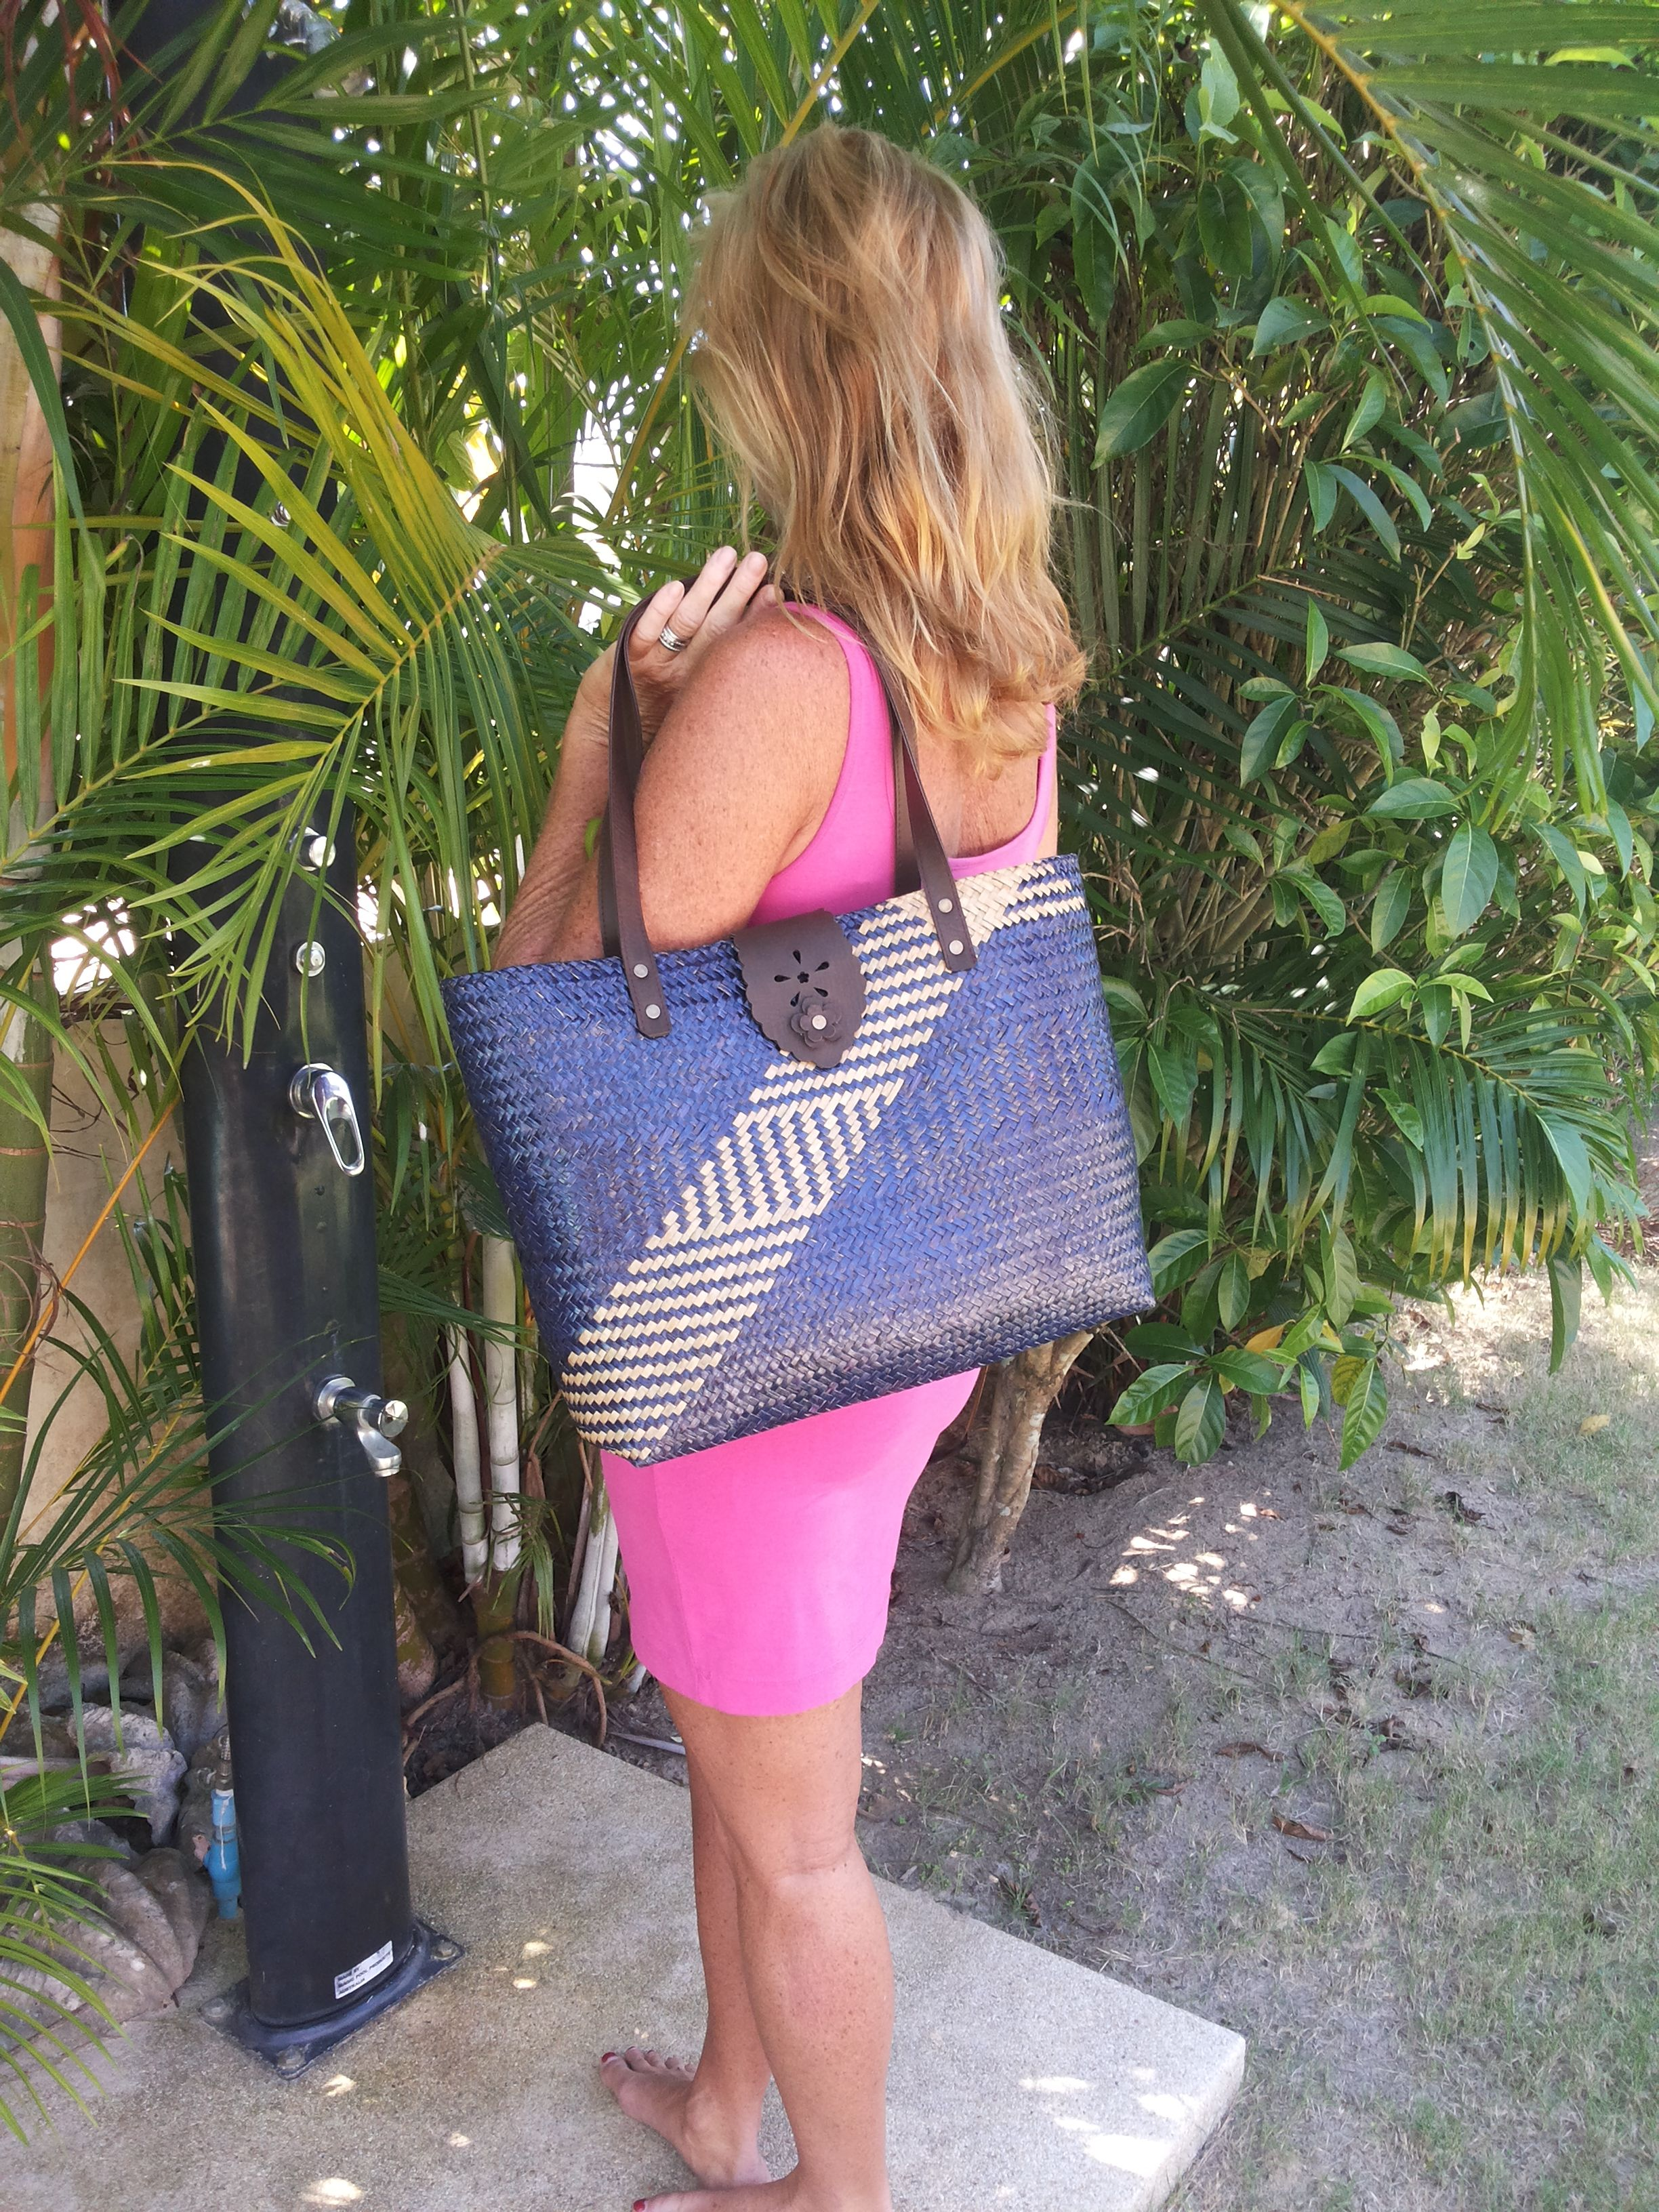 handmade straw bags from thailand  visit our website  WWW.DIODONNA.NL NOW 9.95 EURO or $ 13.50 US DOLLAR